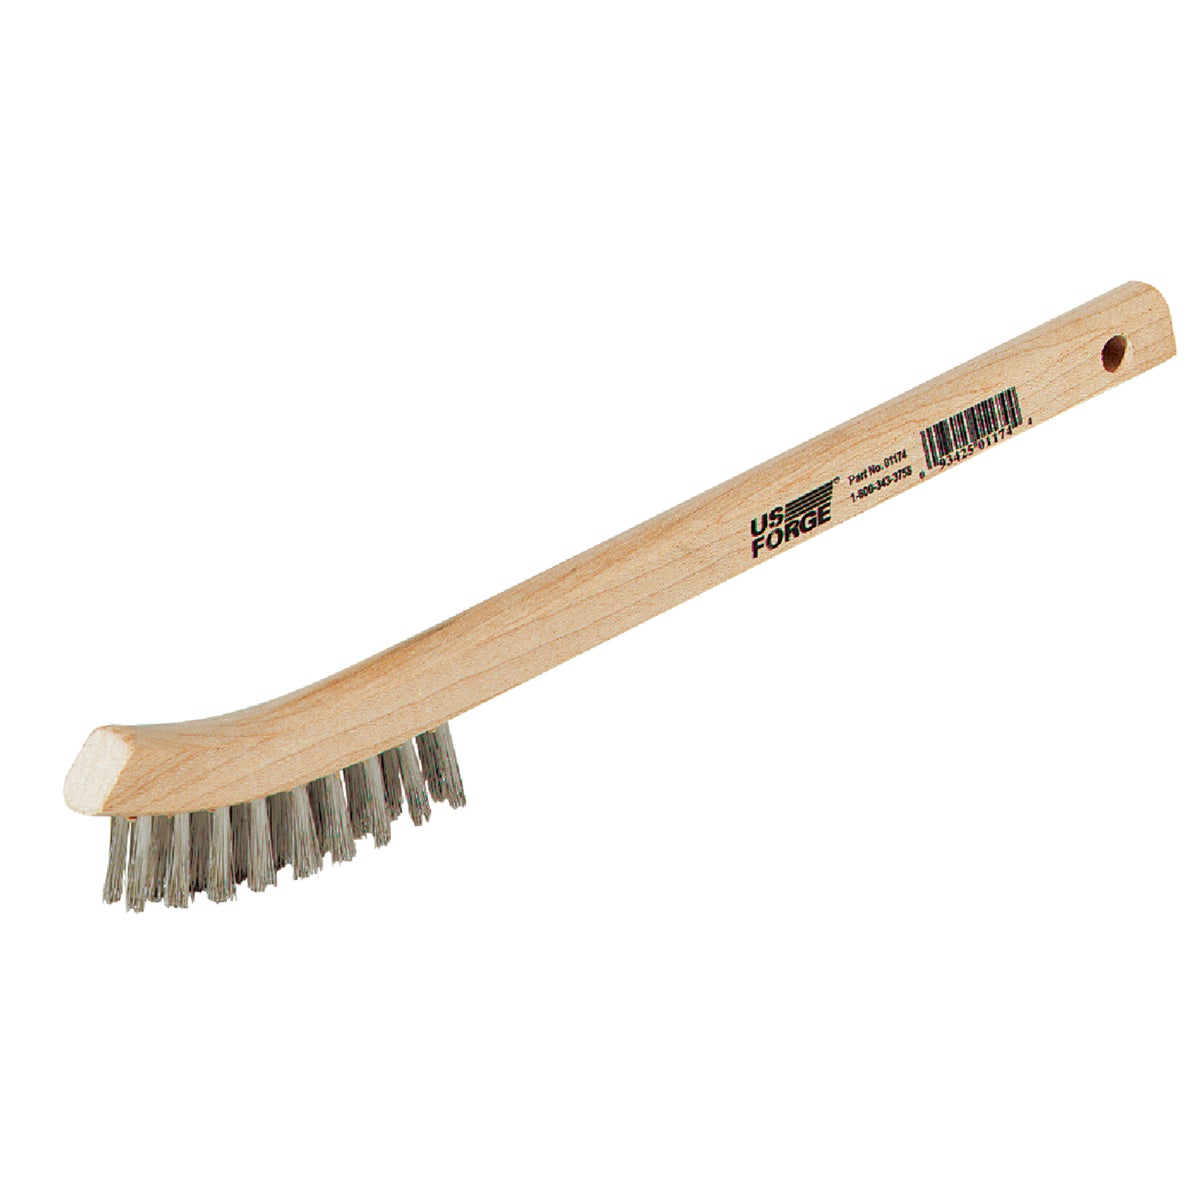 Forney Industries STAINLESS STEEL BRUSH 70506